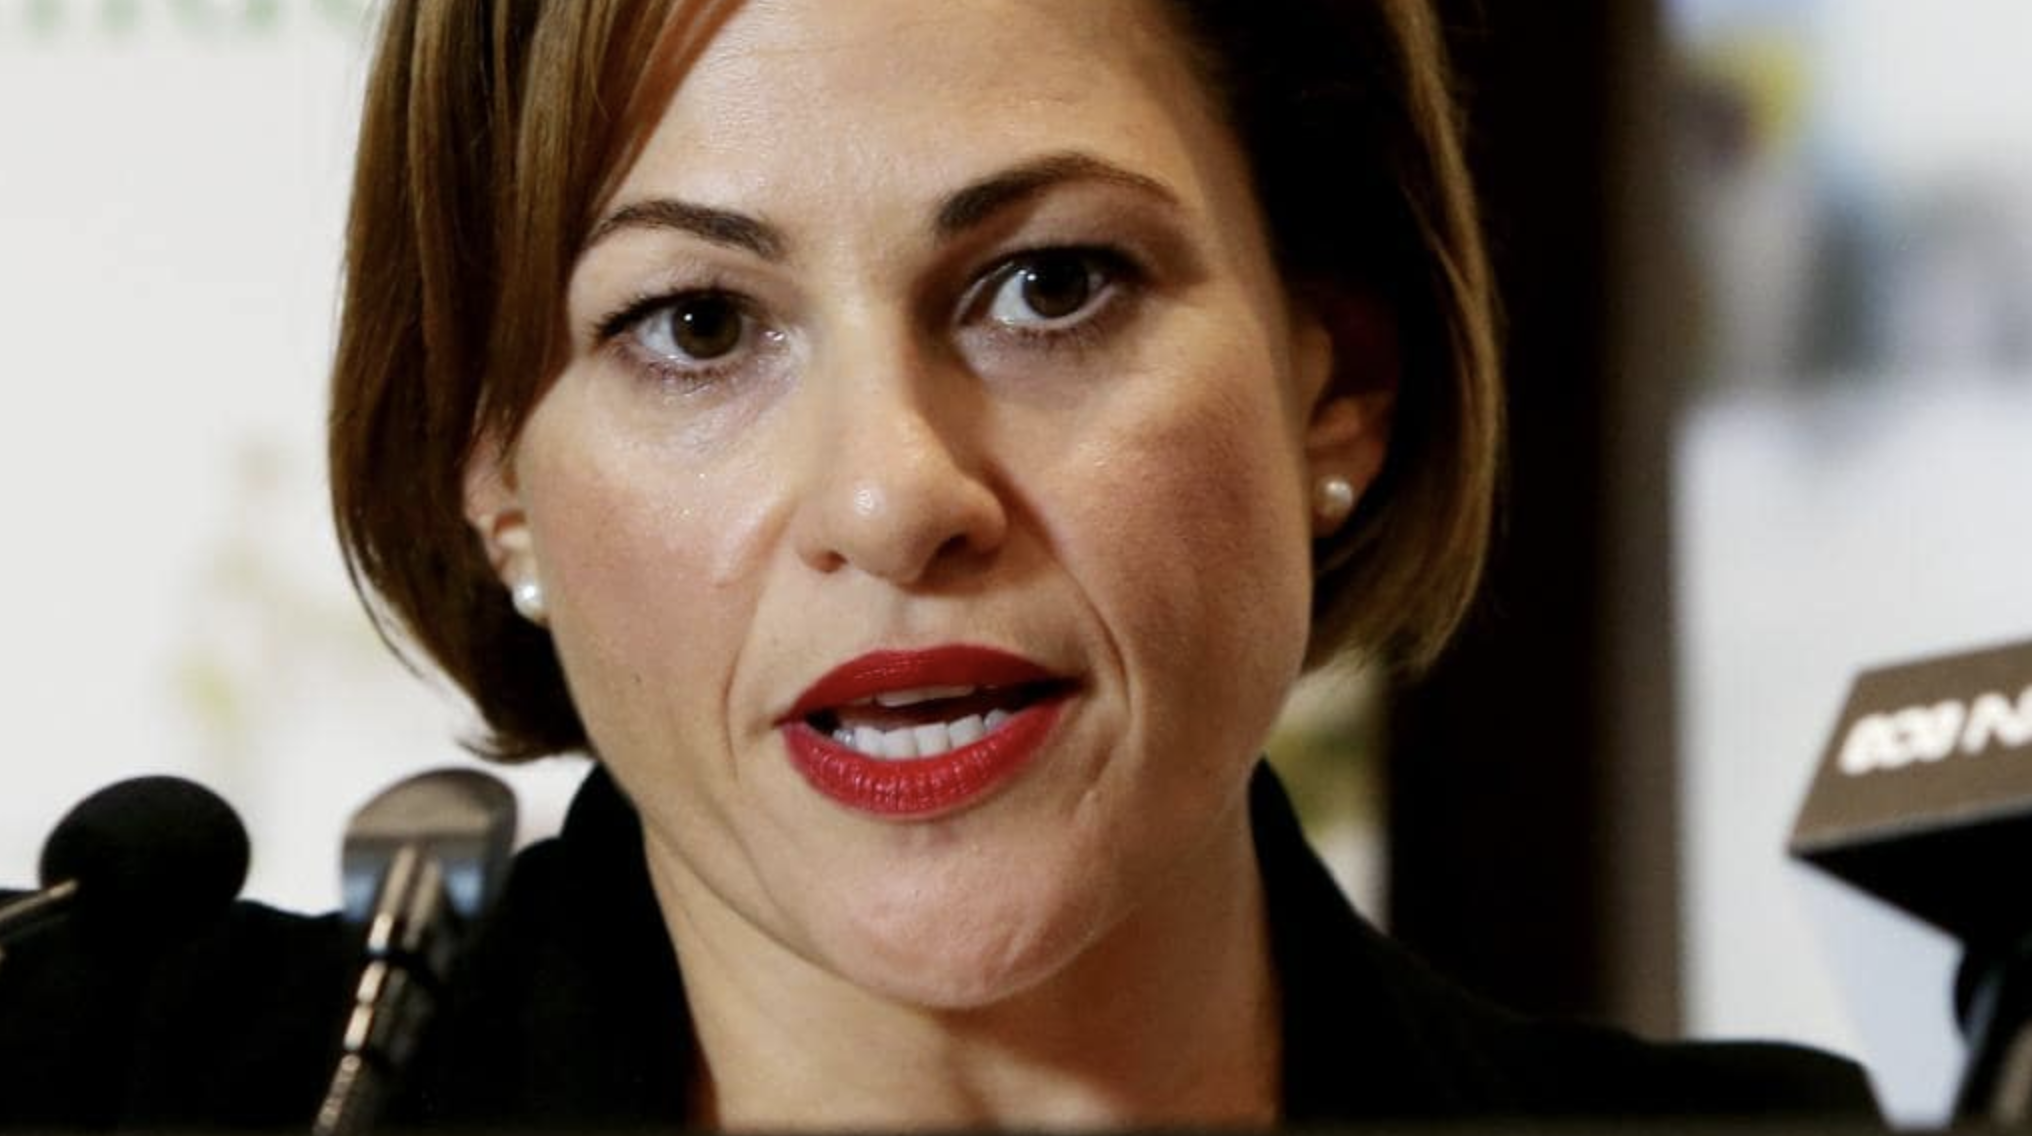 Queensland Deputy Premier Jackie Trad this week released TransformingSEQ, which is the City Deal proposal the state government and its SEQ mayors will discuss in Canberra this week.